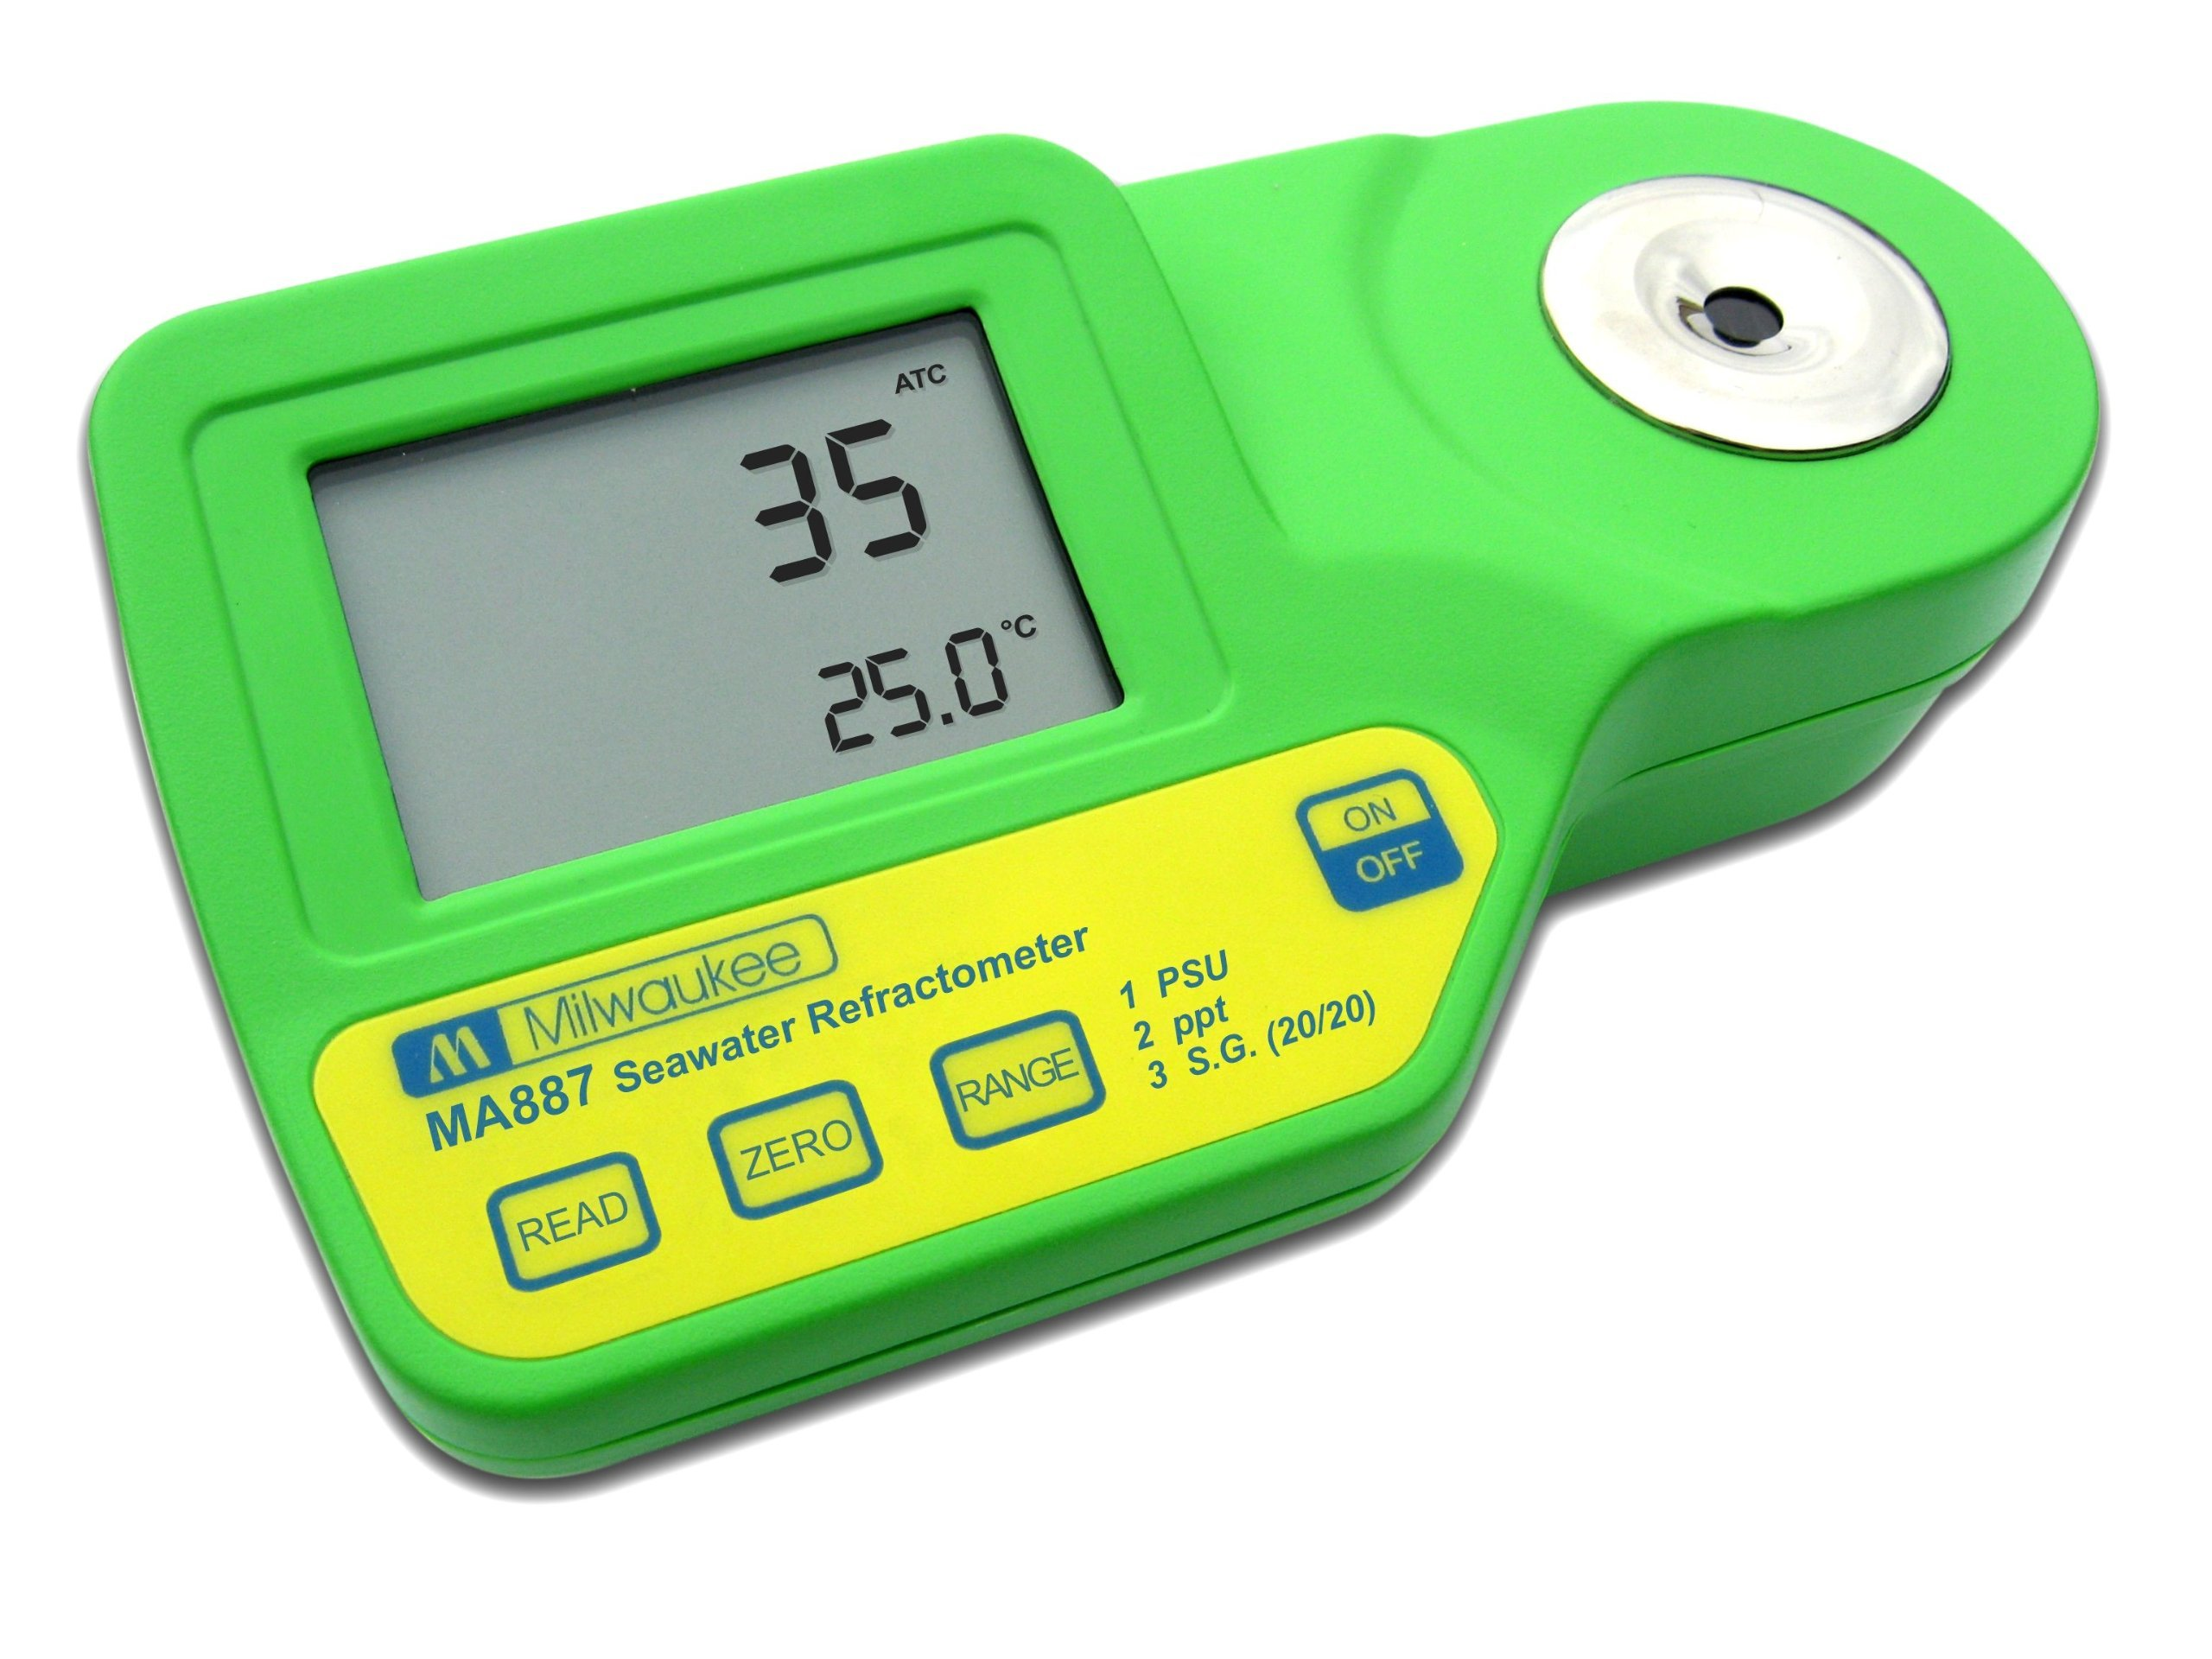 Milwaukee MA887 Digital Salinity Refractometer with Automatic Temperature Compensation, Yellow LED, 0 to 50 PSU, +/-2 PSU Accuracy, 1 PSU Resolution (Renewed)